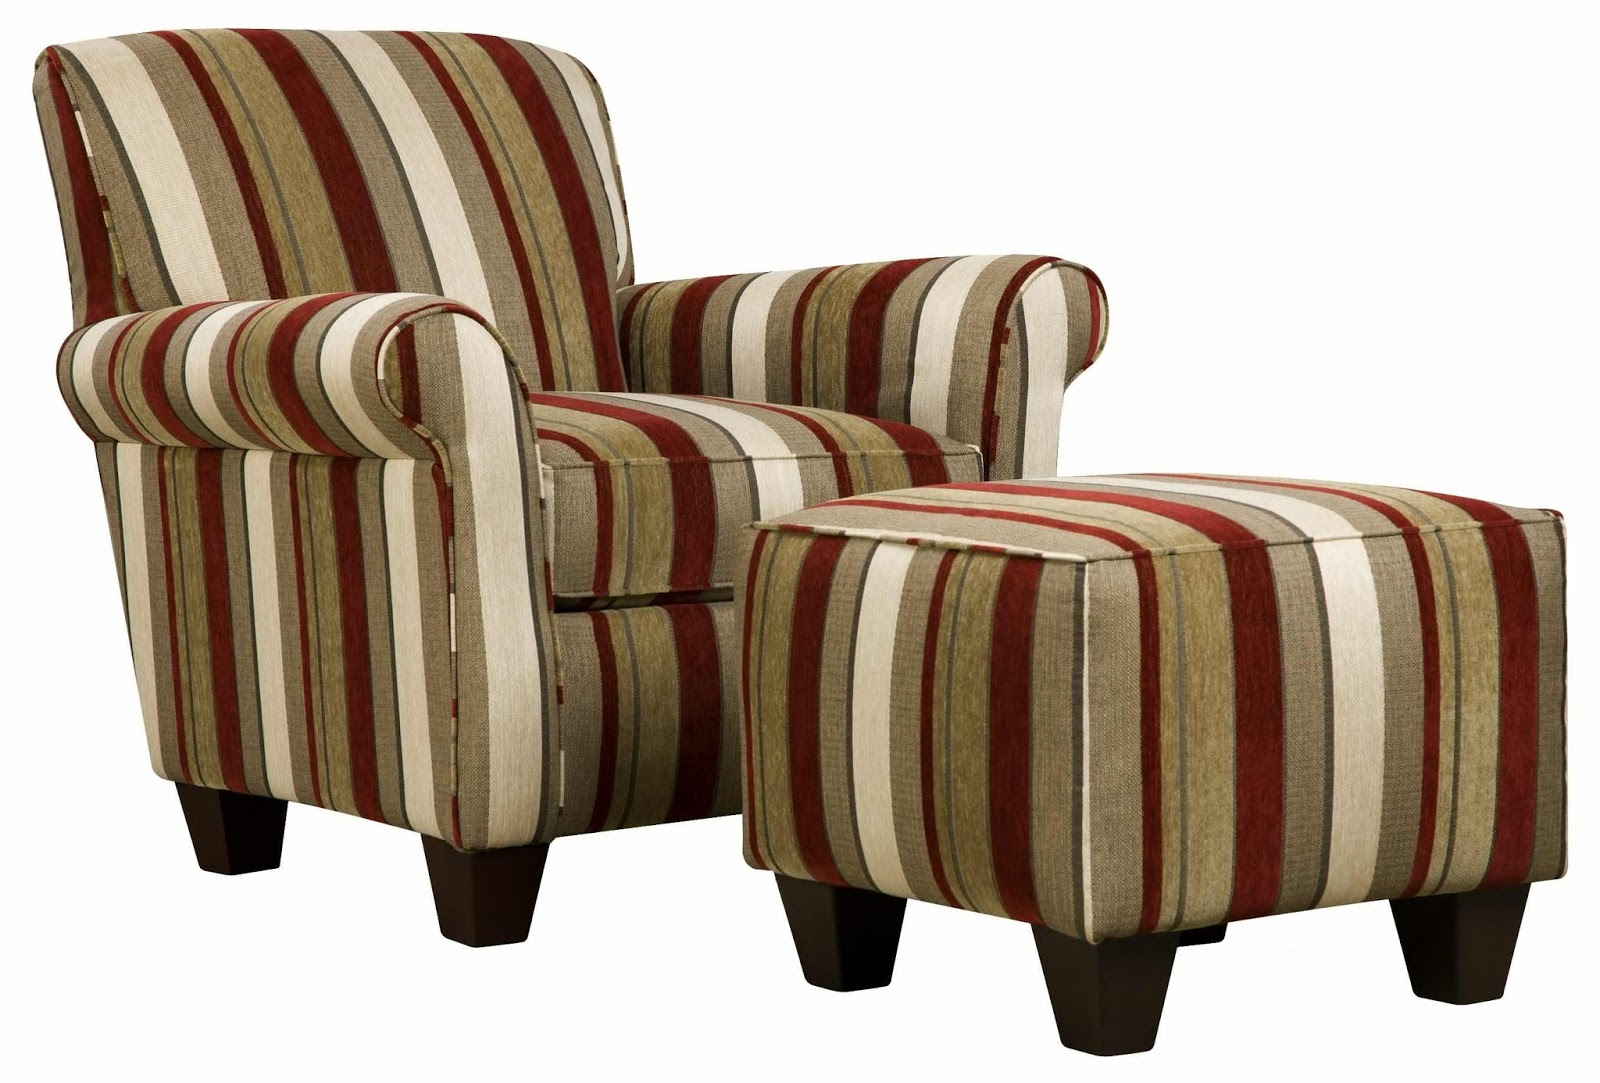 Chairs With Ottomans For Living Room Living Room Chairs With Ottomans Large Style Home Cheap